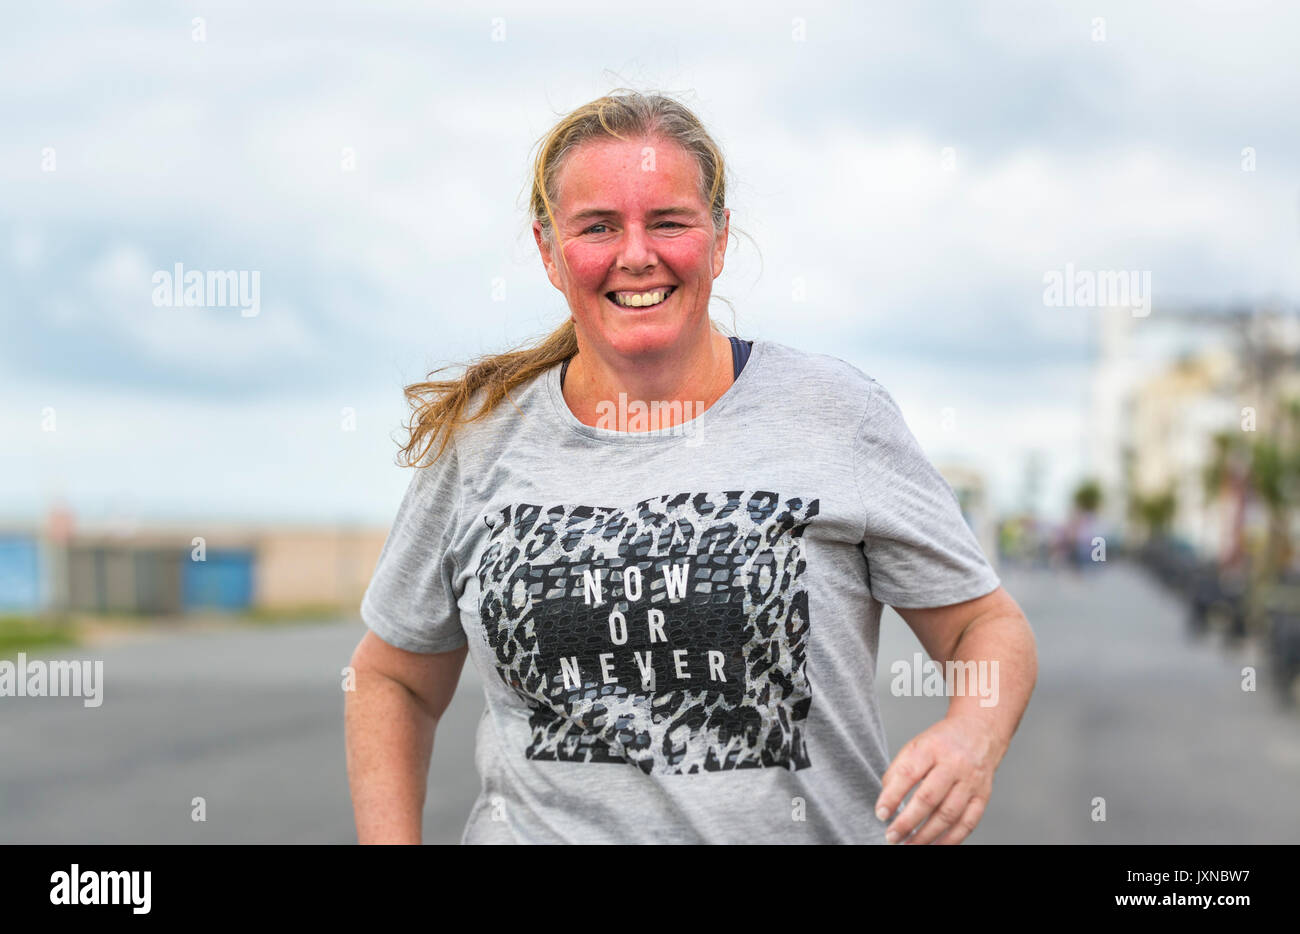 Middle aged overweight woman running as part of plan to lose weight and get fit, at the Worthing Vitality Parkrun event. - Stock Image